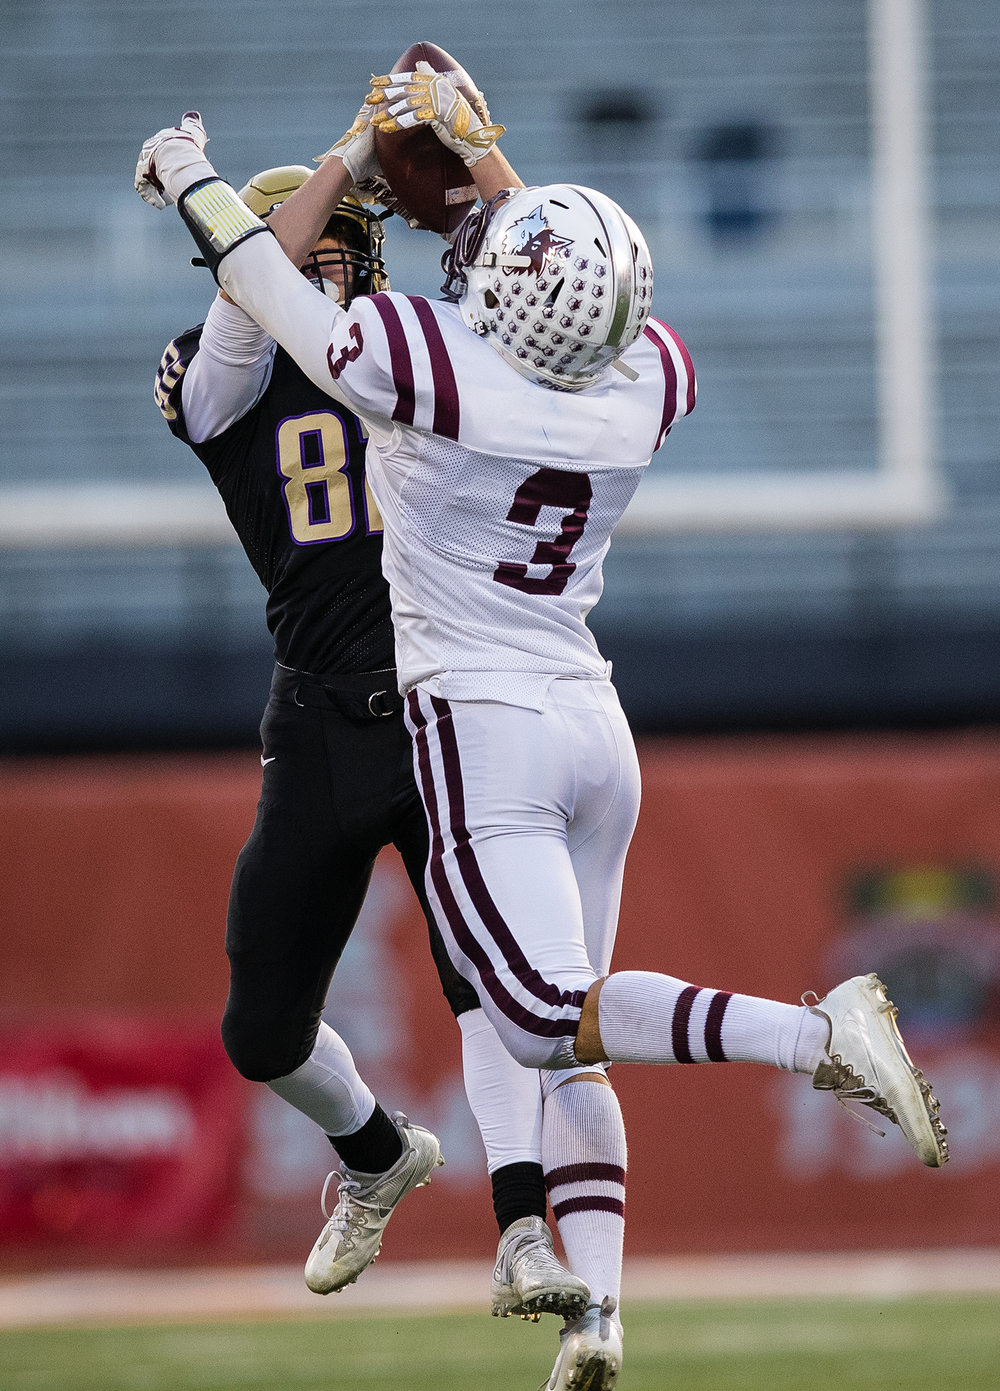 Sacred Heart-Griffin's Nick Stirens grabs a pass over Prairie Ridge's James Queen during the Class 6A championship game at Memorial Stadium in Champaign, Ill., Friday, Nov. 26, 2016.